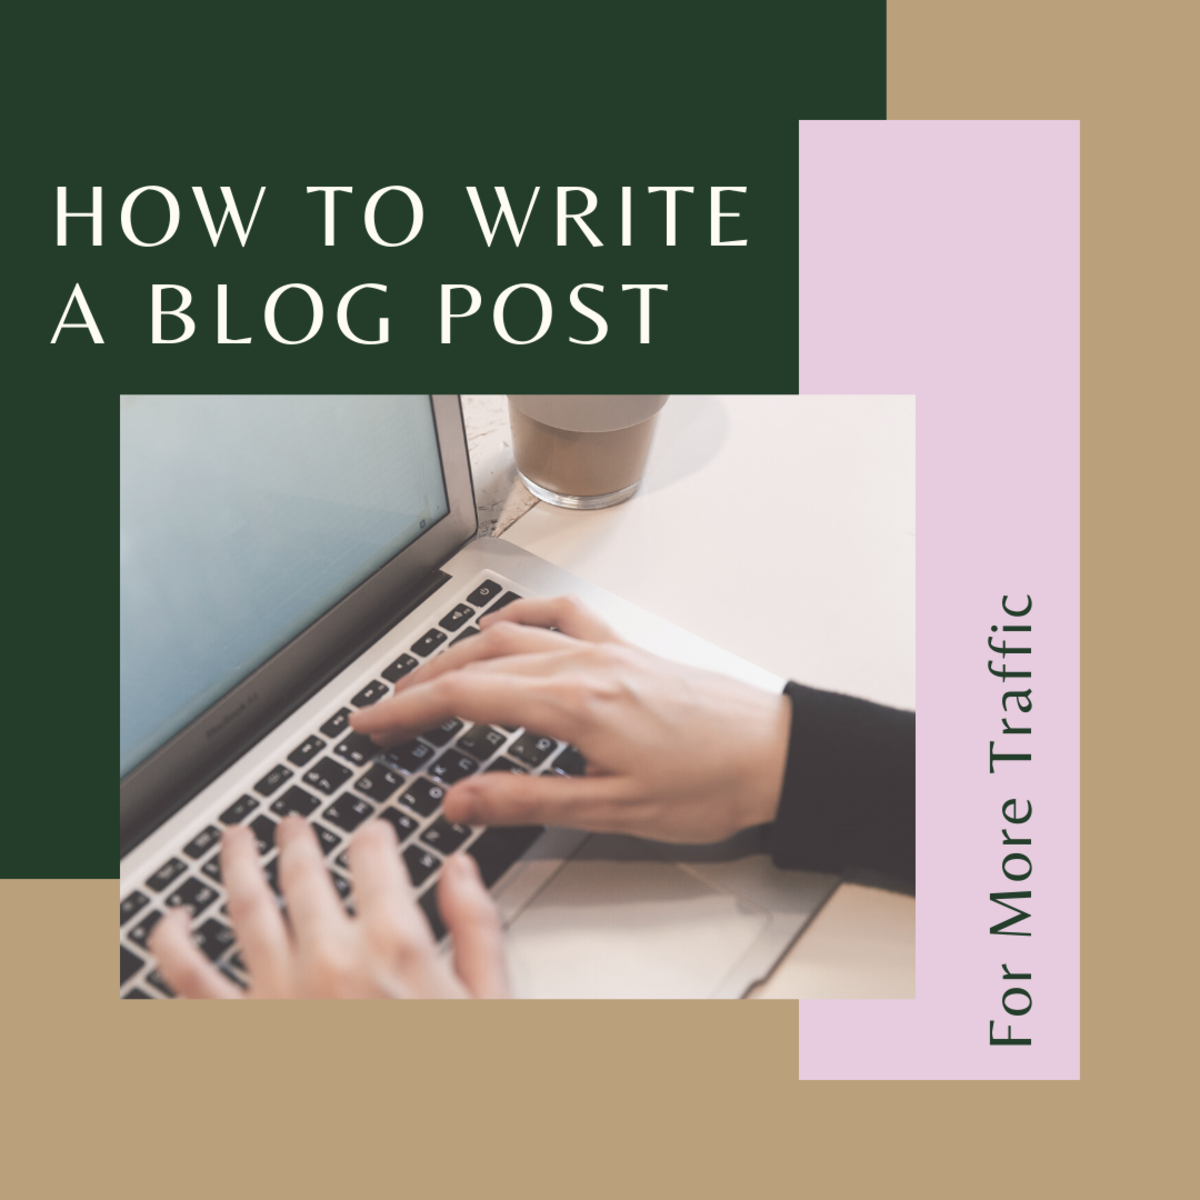 How to Write a Blog Post for More Traffic